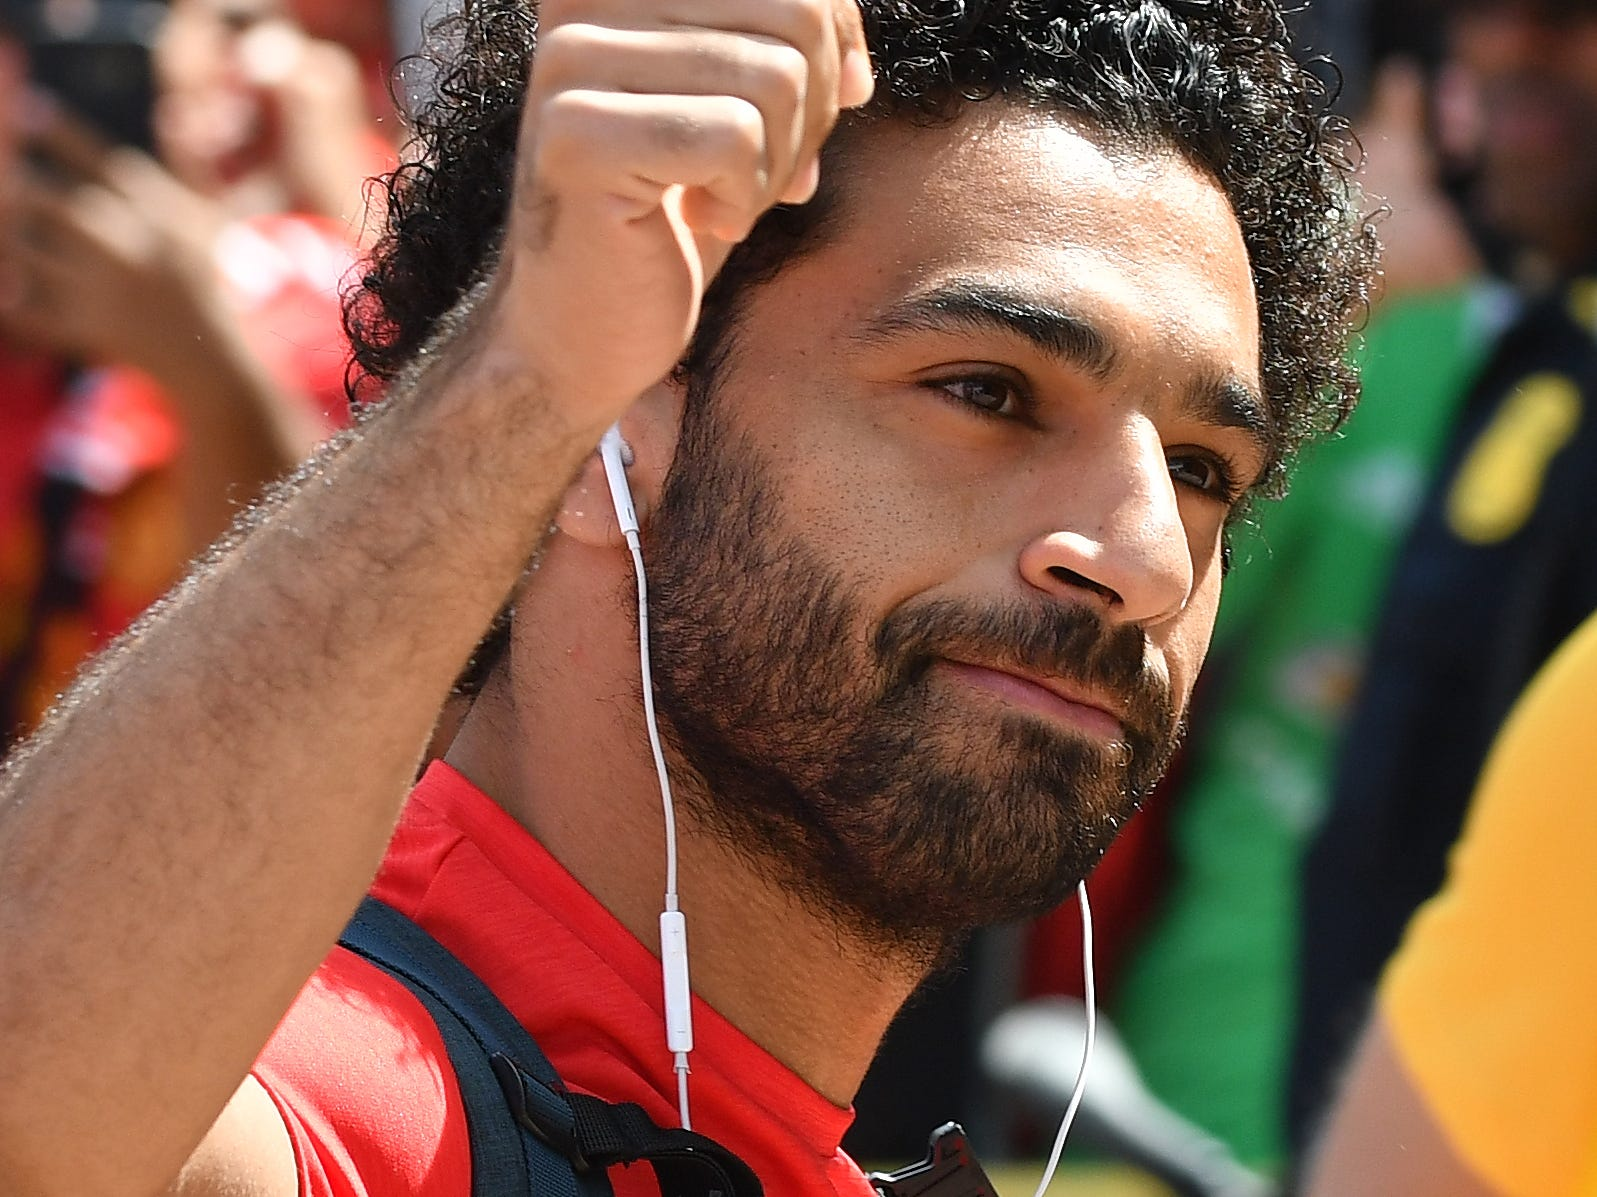 Liverpool midfielder Mohamed Salah gives the thumbs up as he arrives to Michigan Stadium for the game against Manchester.